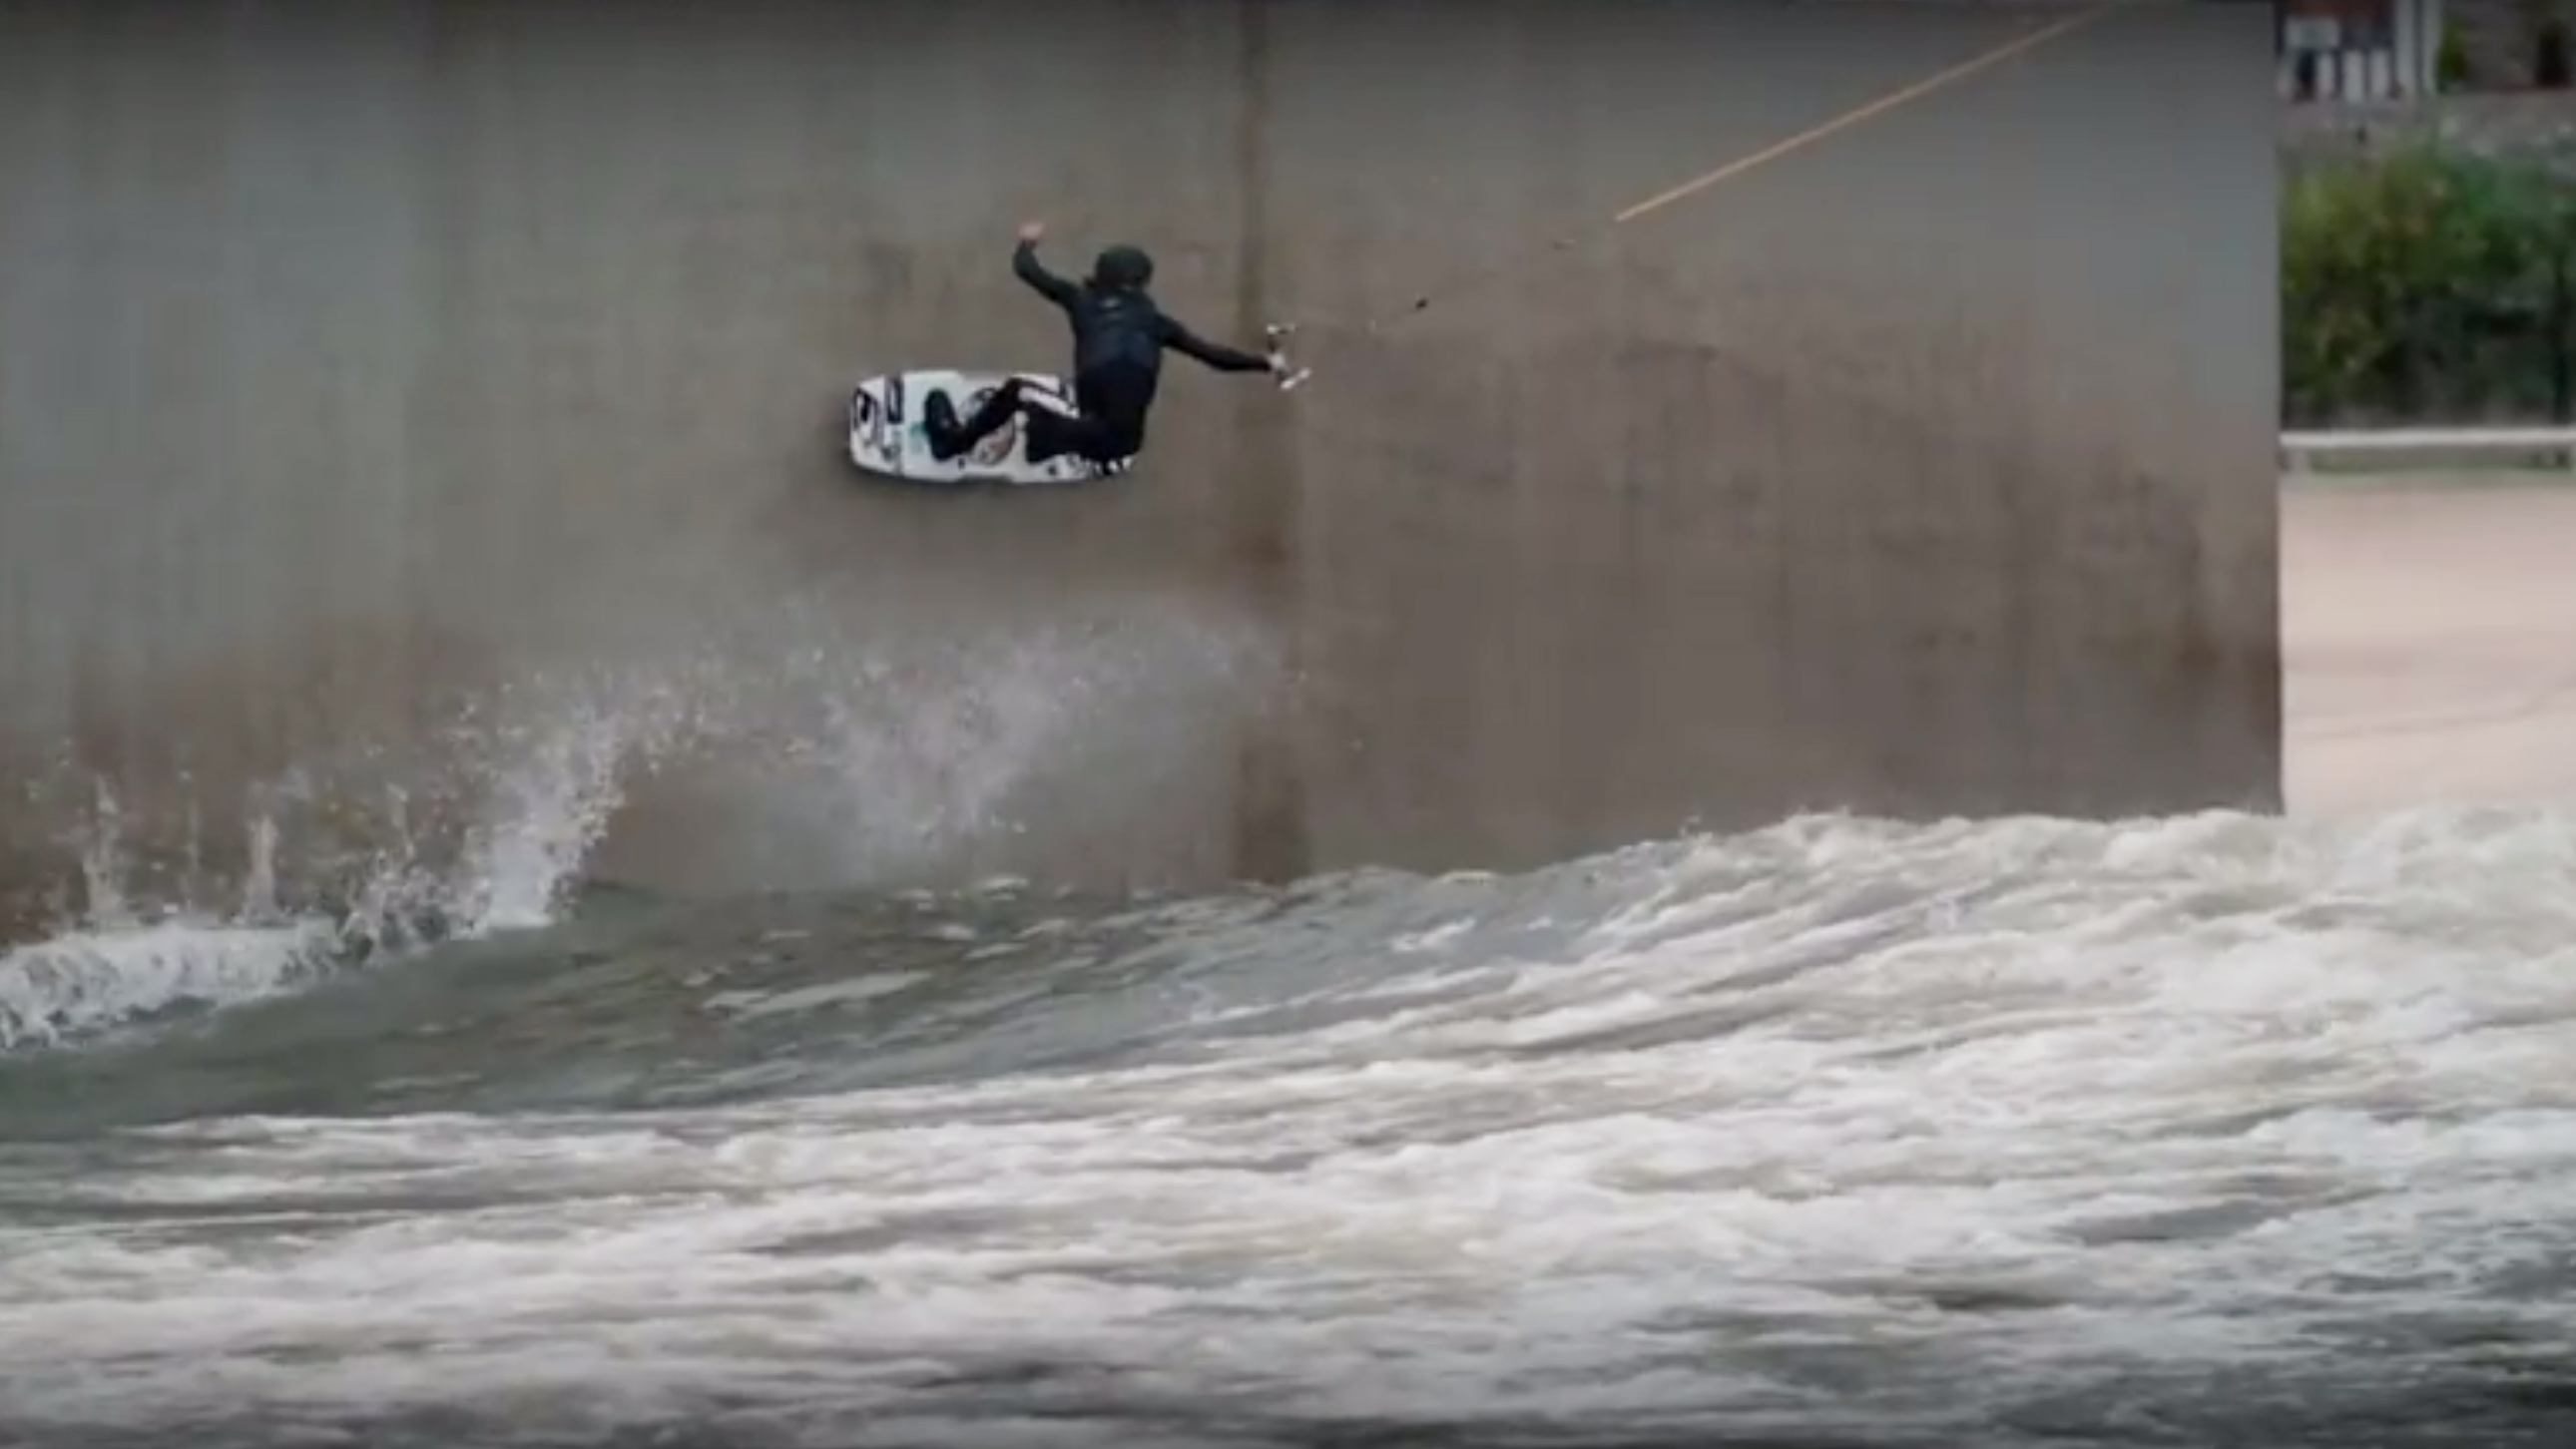 nico von lerchenfeld wall ride at Surf Snowdonia